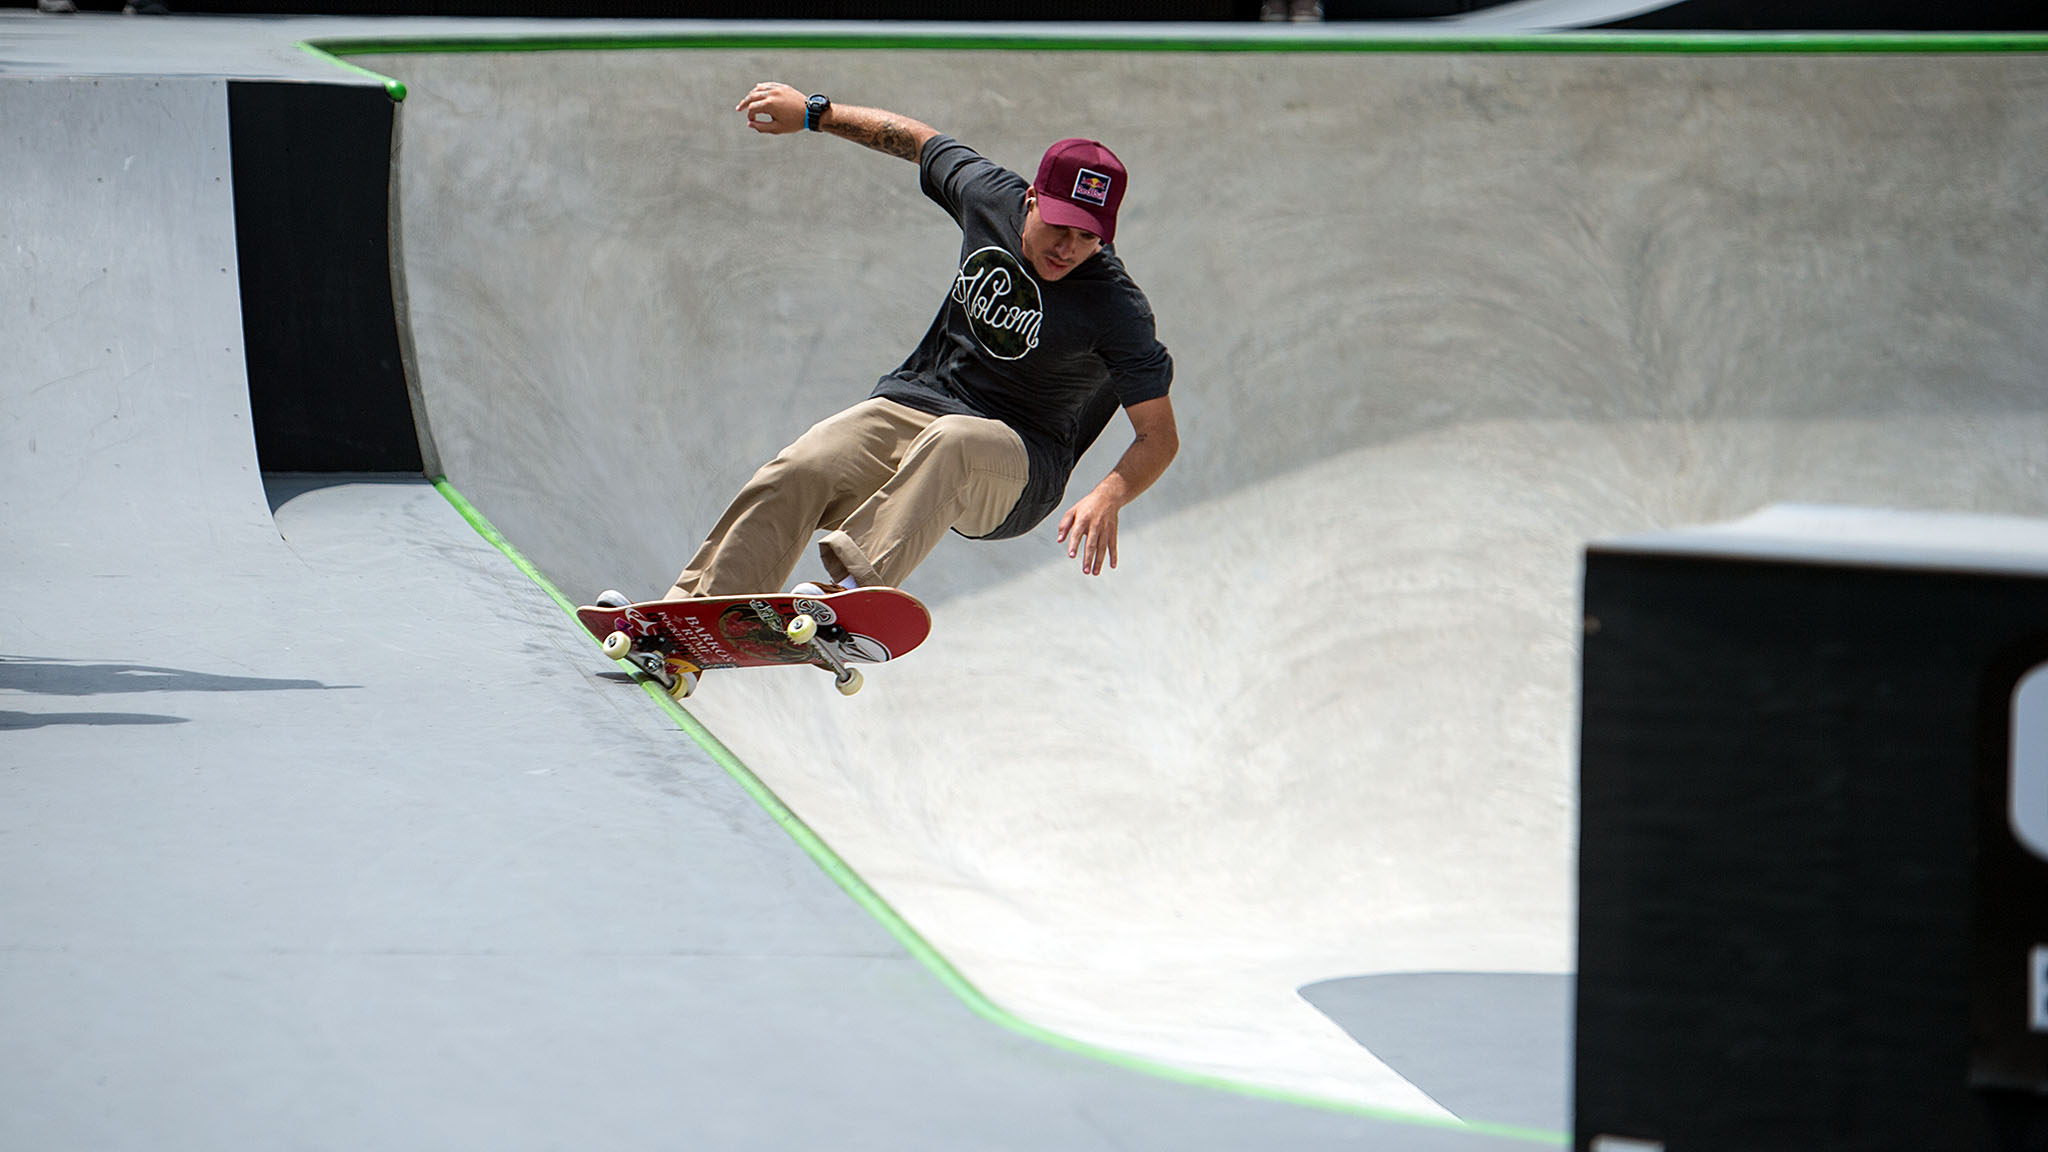 Pedro Barros won his fifth gold medal in Skateboard Park.